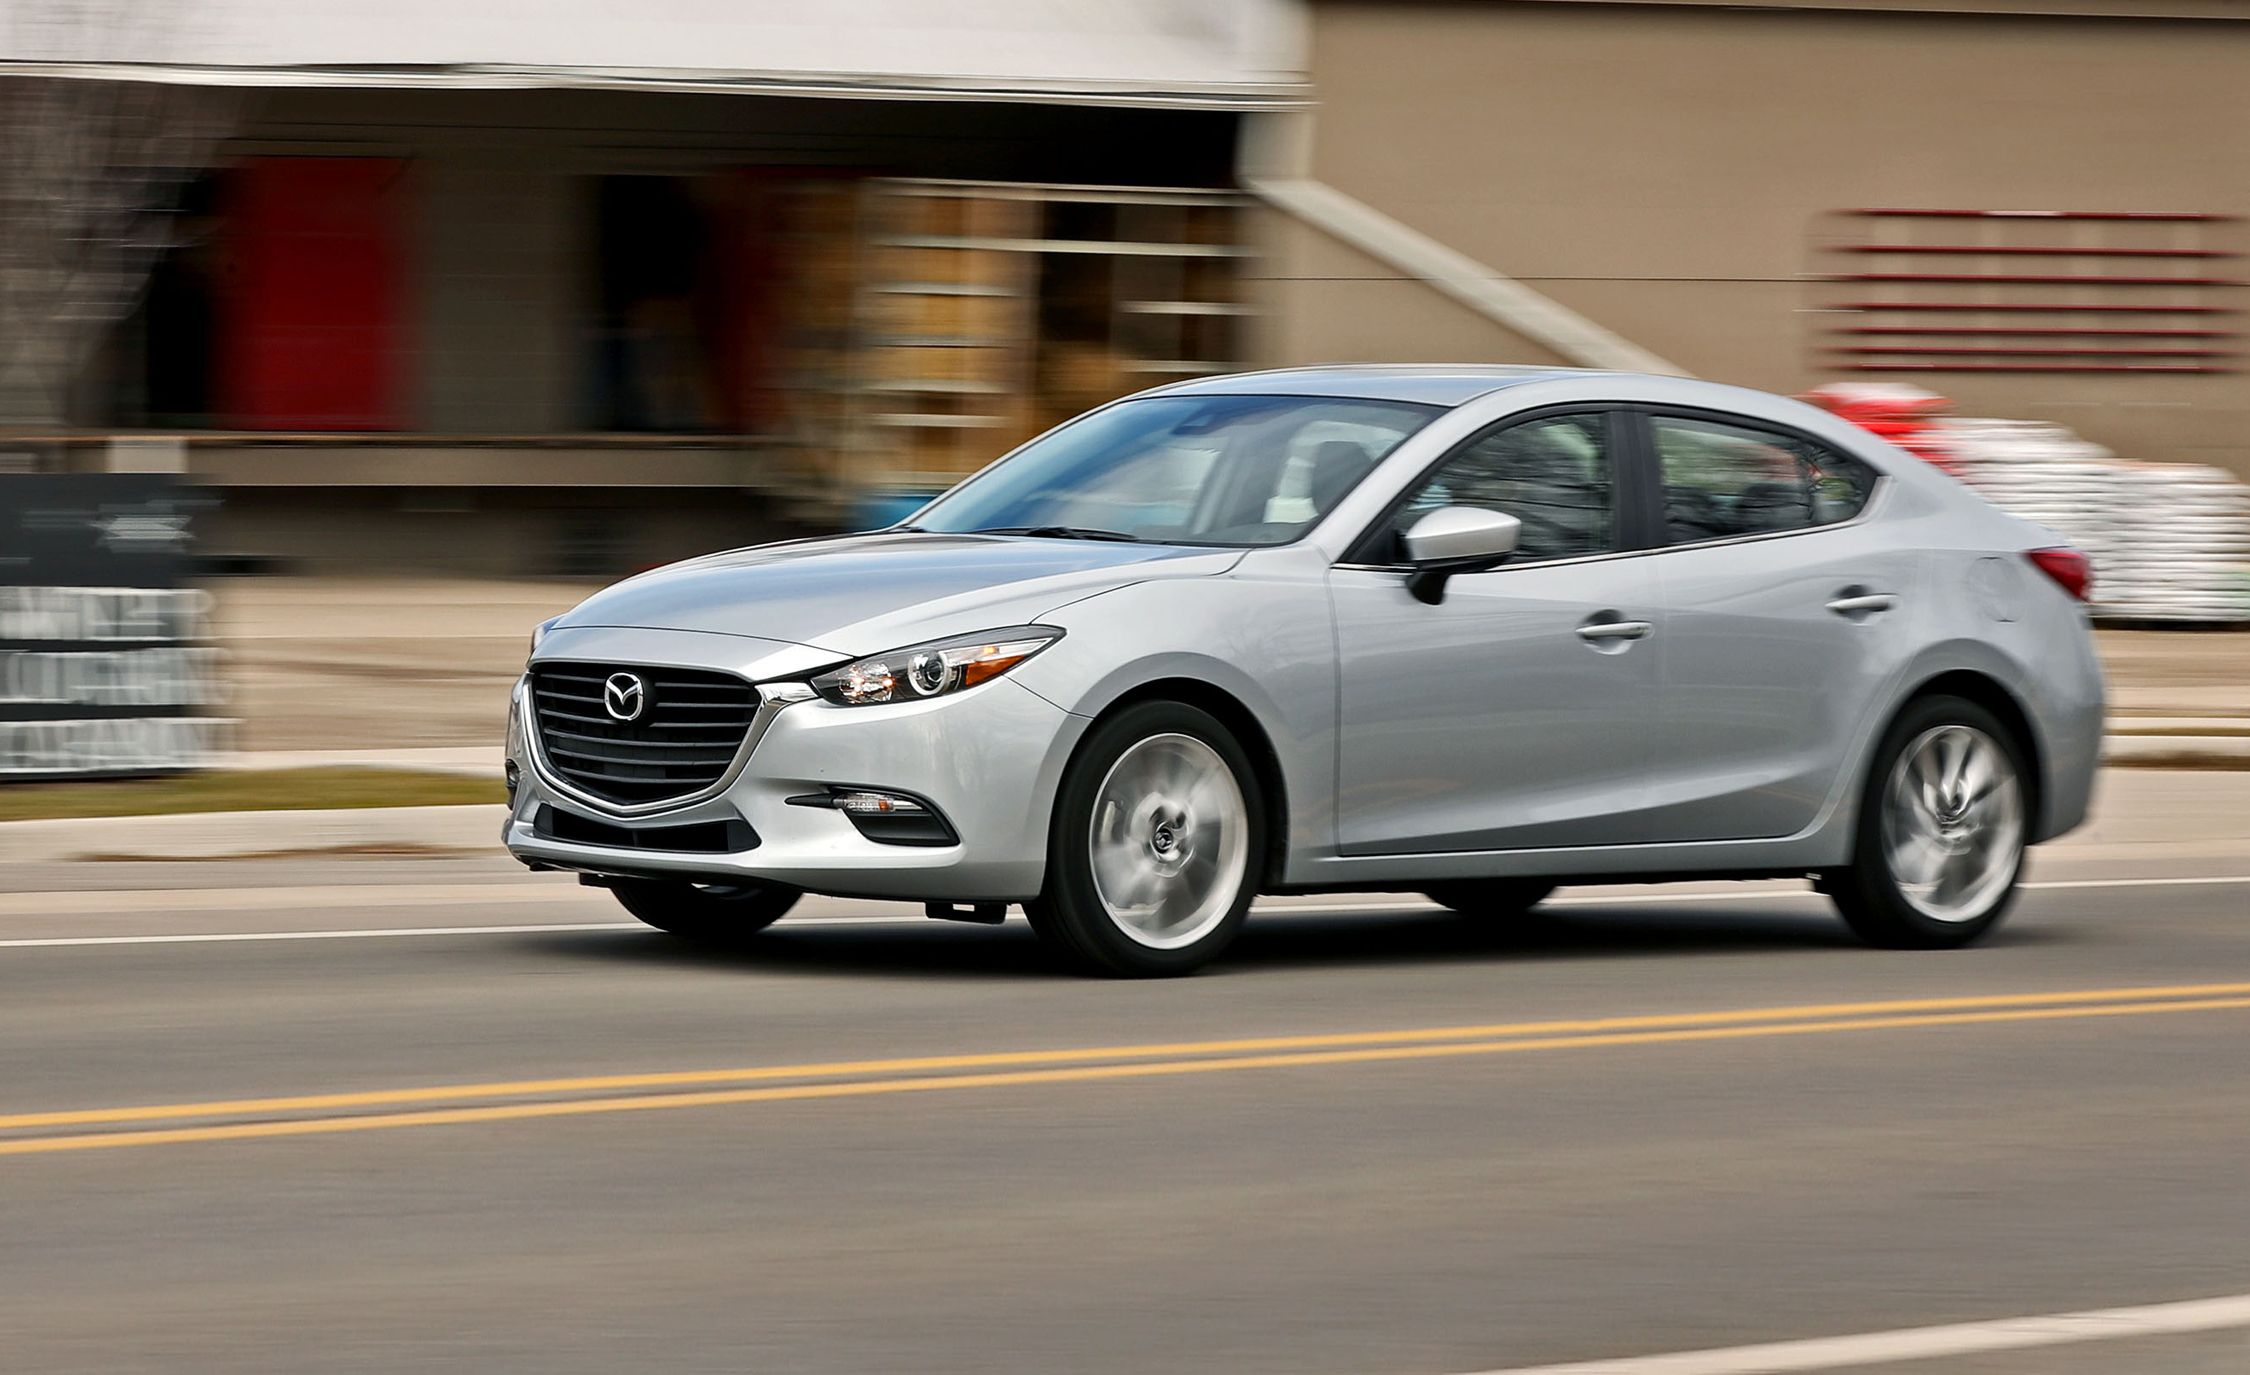 2018 Mazda 3 | In-Depth Model Review | Car and Driver